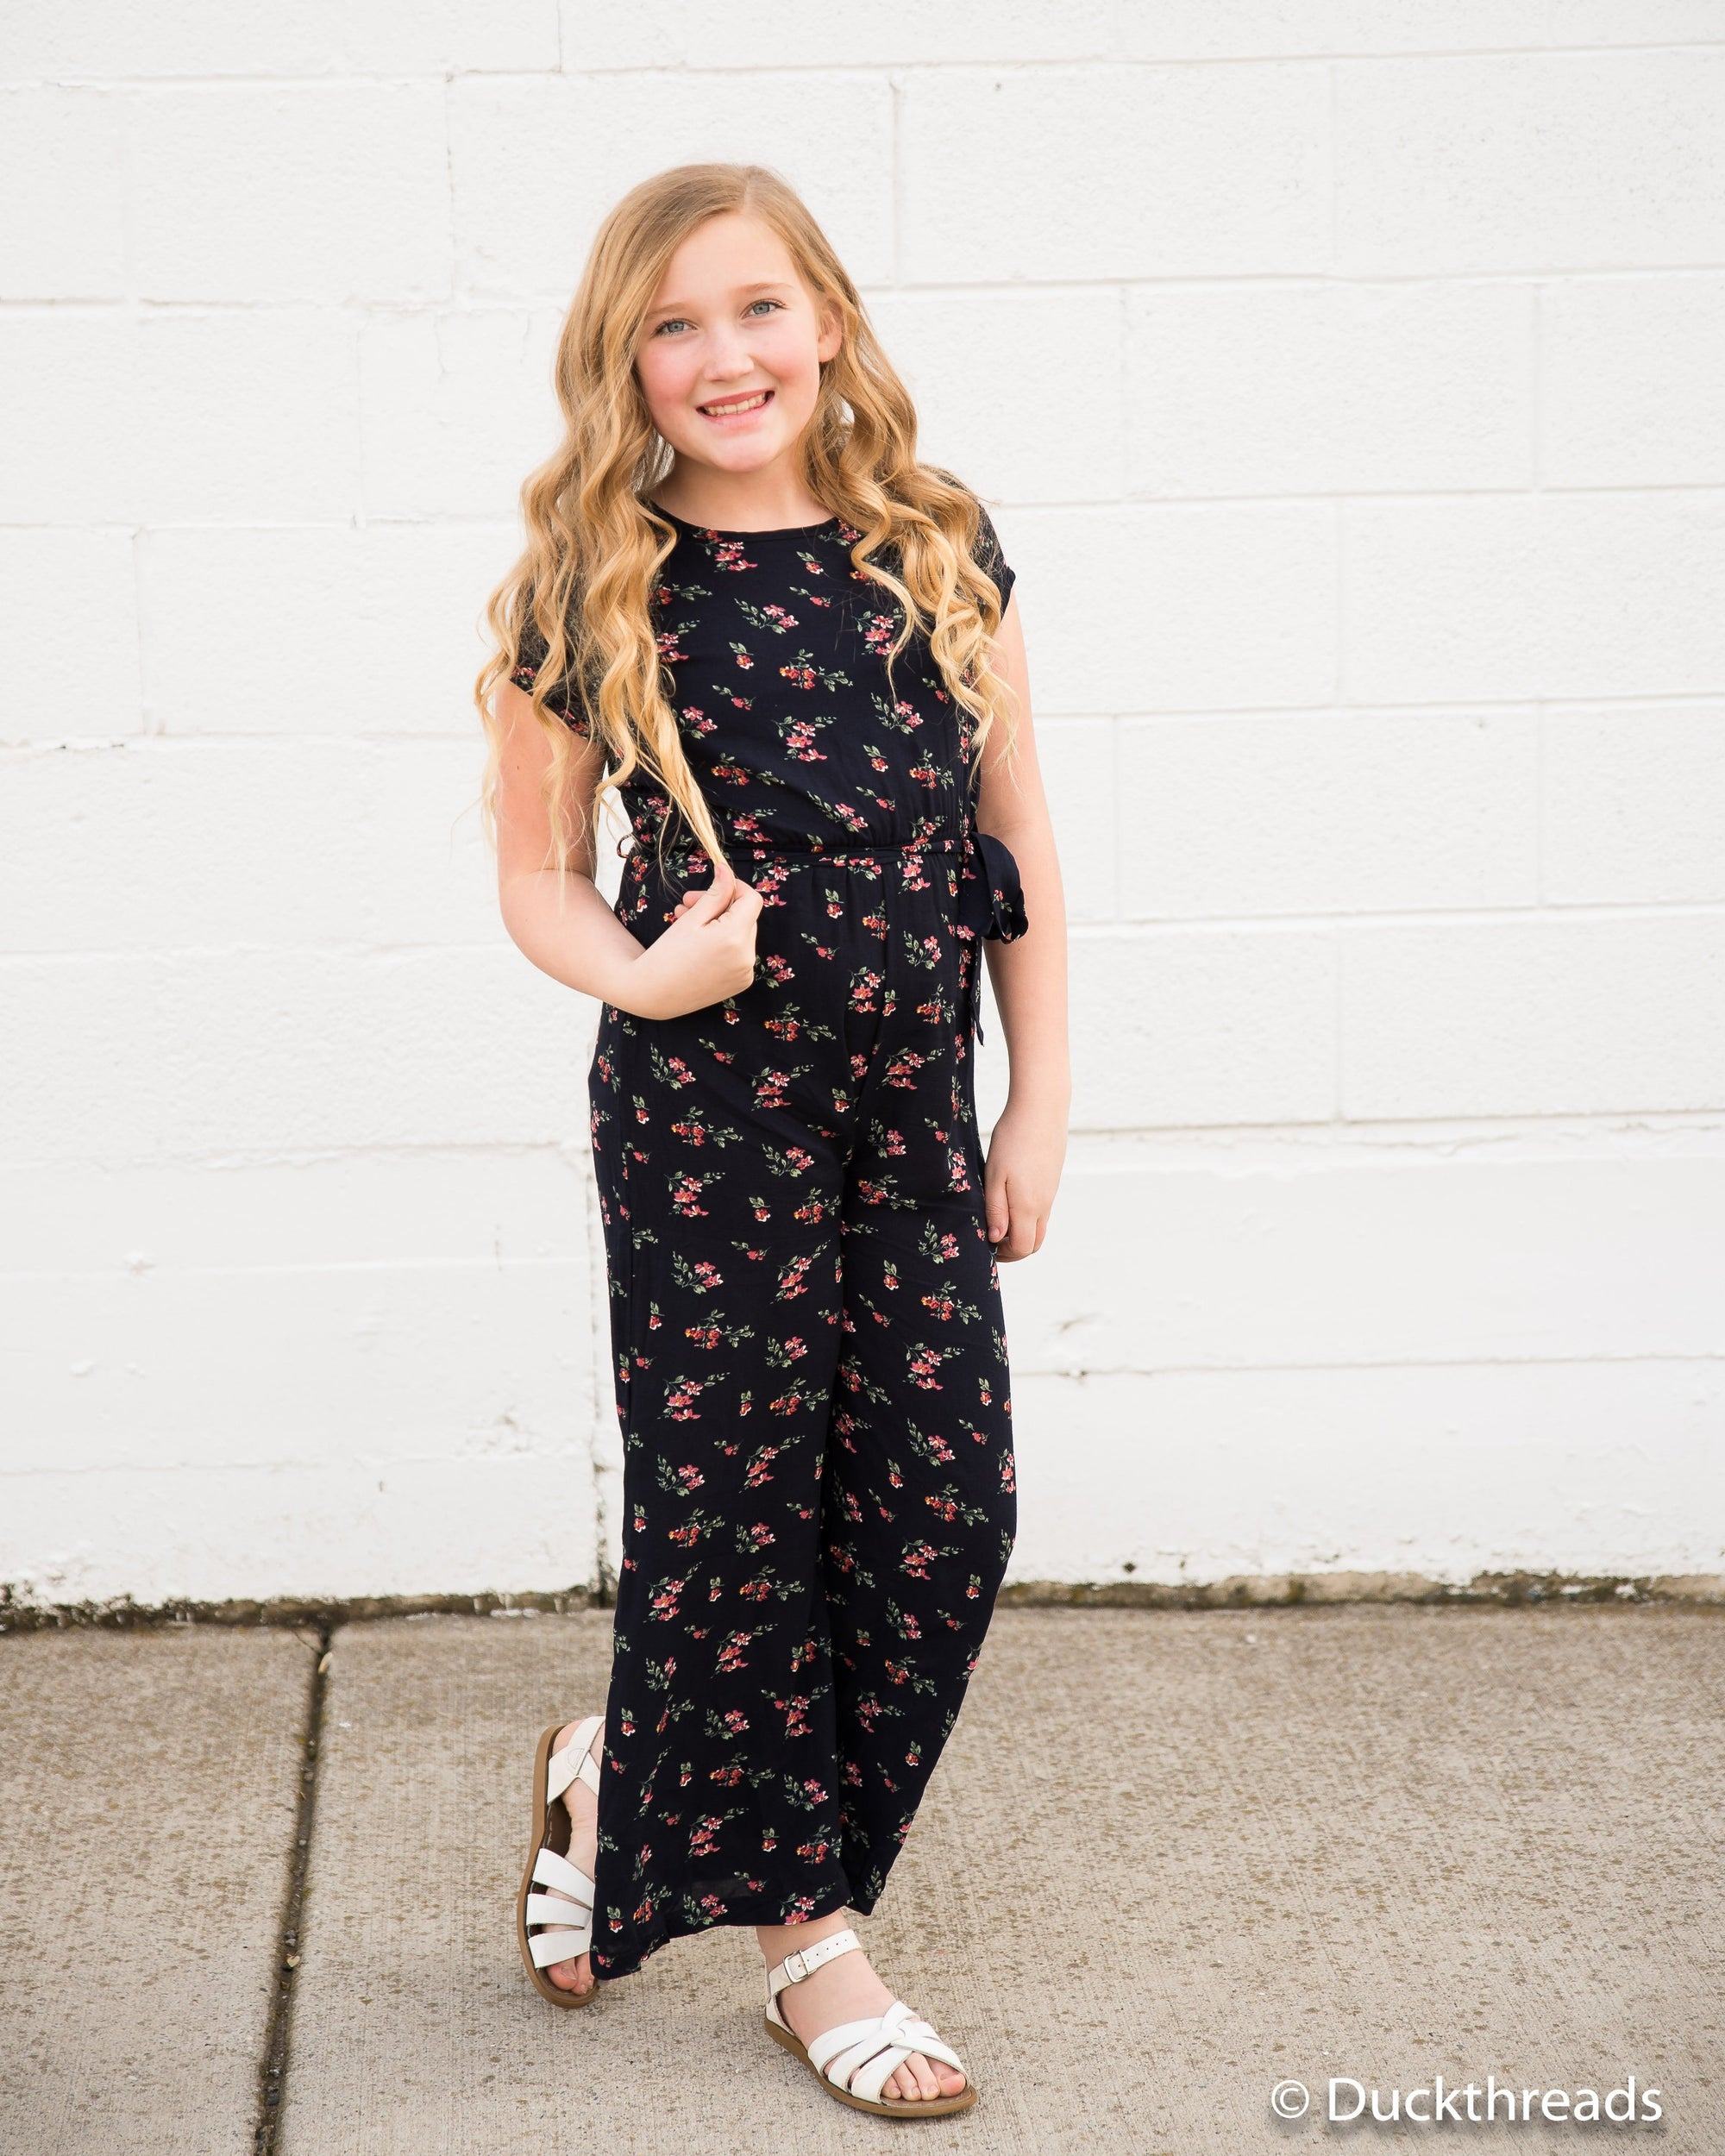 Madison Girls Jumpsuit Romper - Navy floral